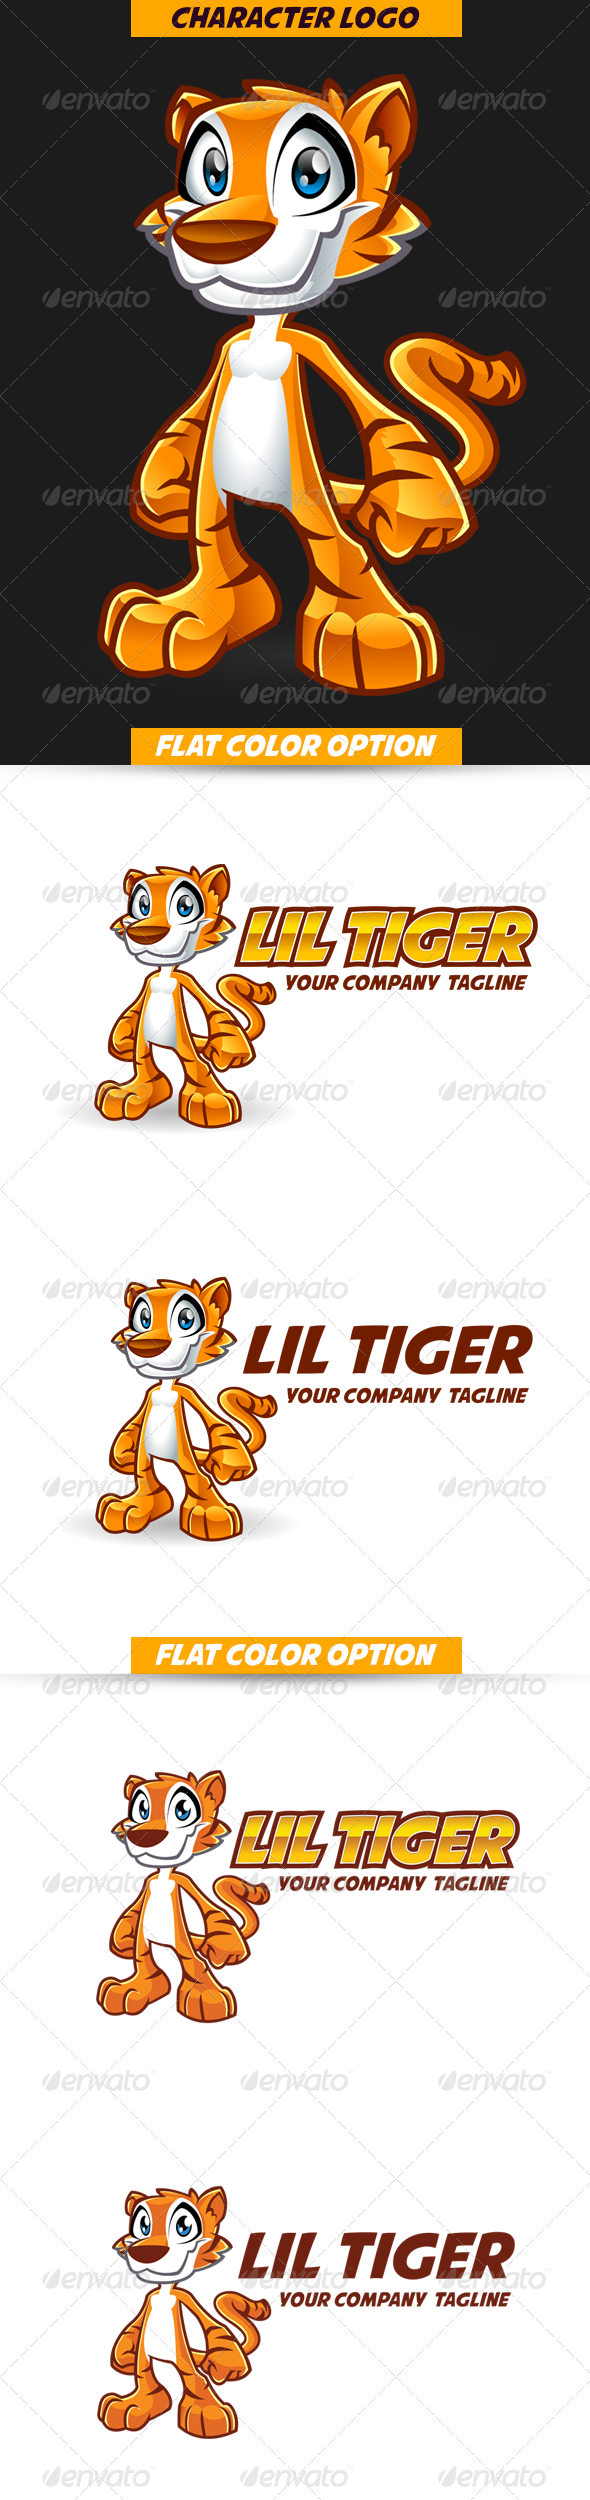 GraphicRiver Cartoon Tiger Mascot Character Logo 5713829